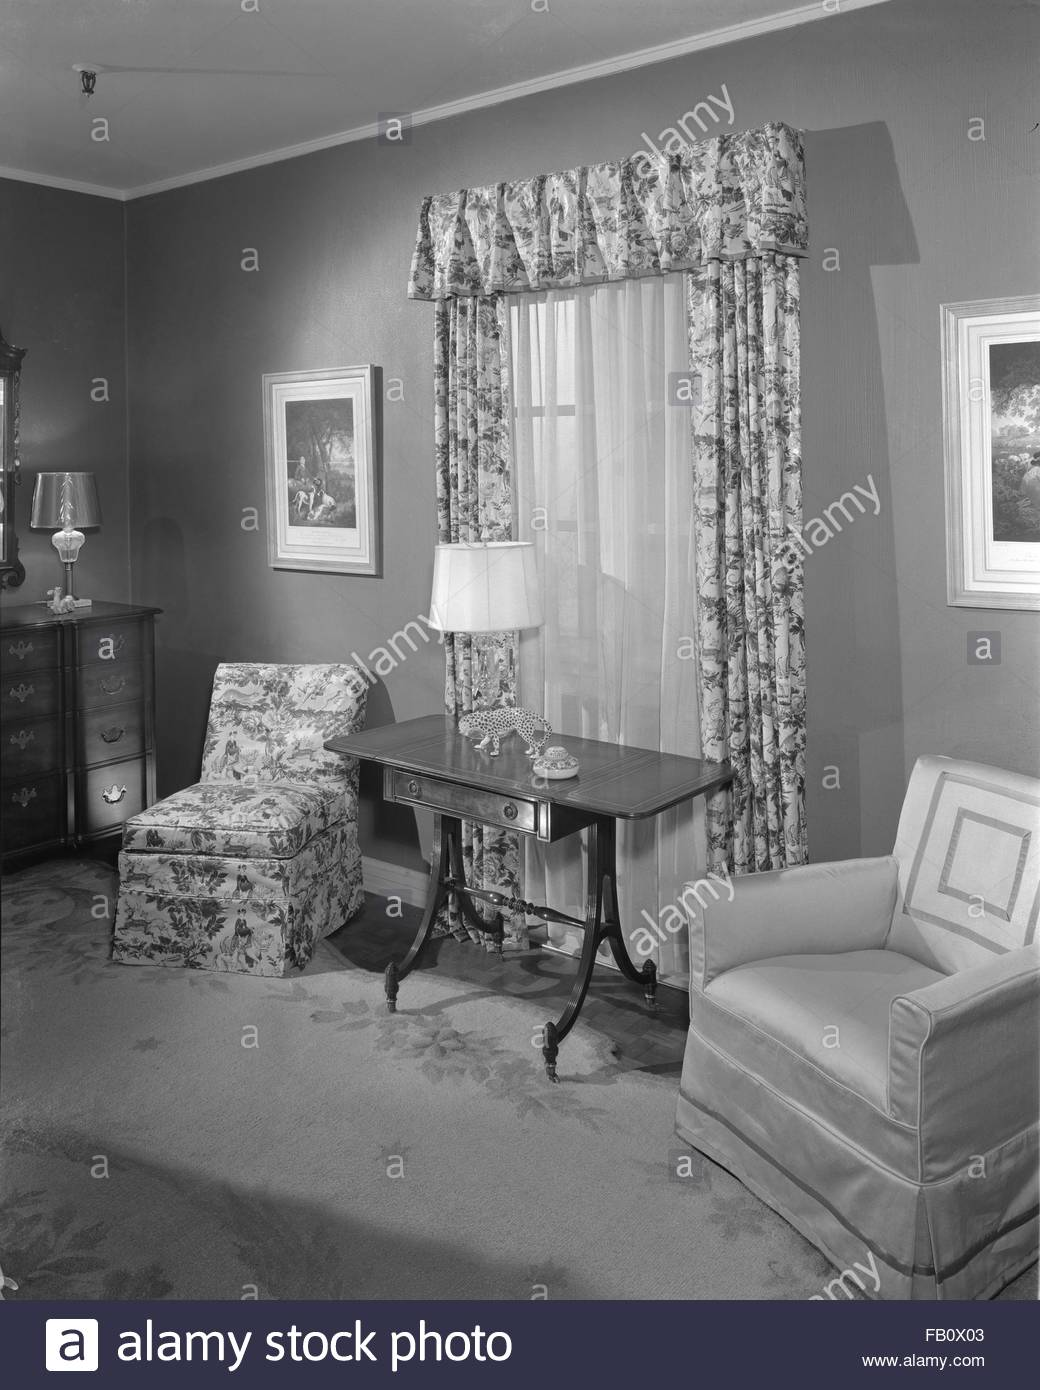 Bedroom furniture at Marshall Field and Company, 1943 Feb. 25. Upholstered chairs, dresser, four-poster twin beds, Stock Photo